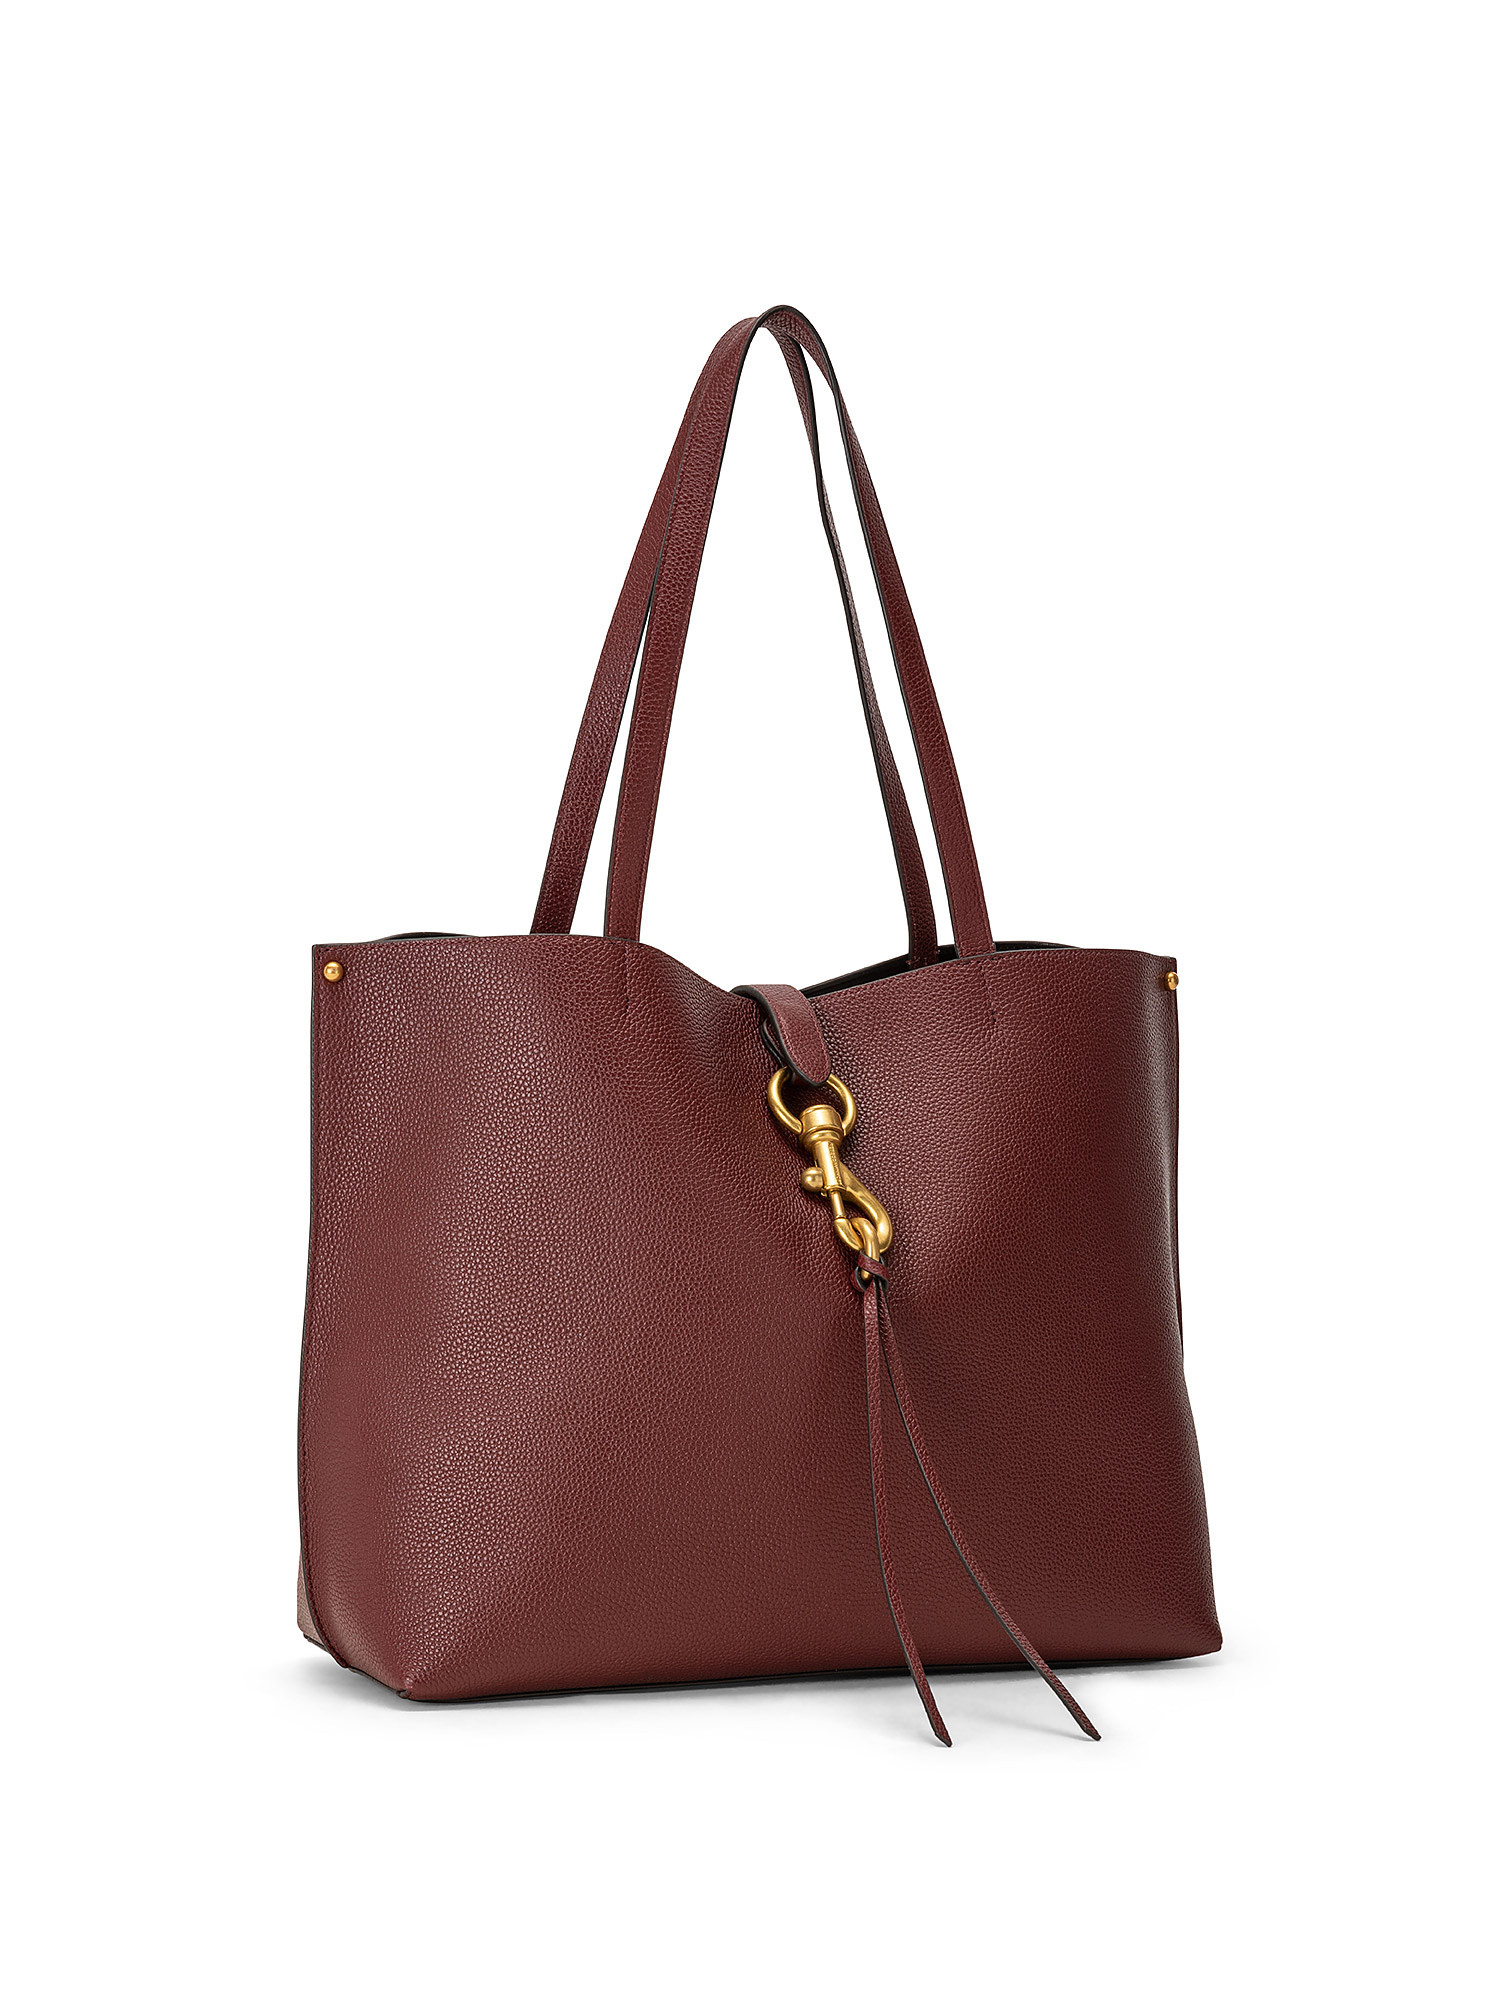 Megan Tote, Rosso ciliegia, large image number 1